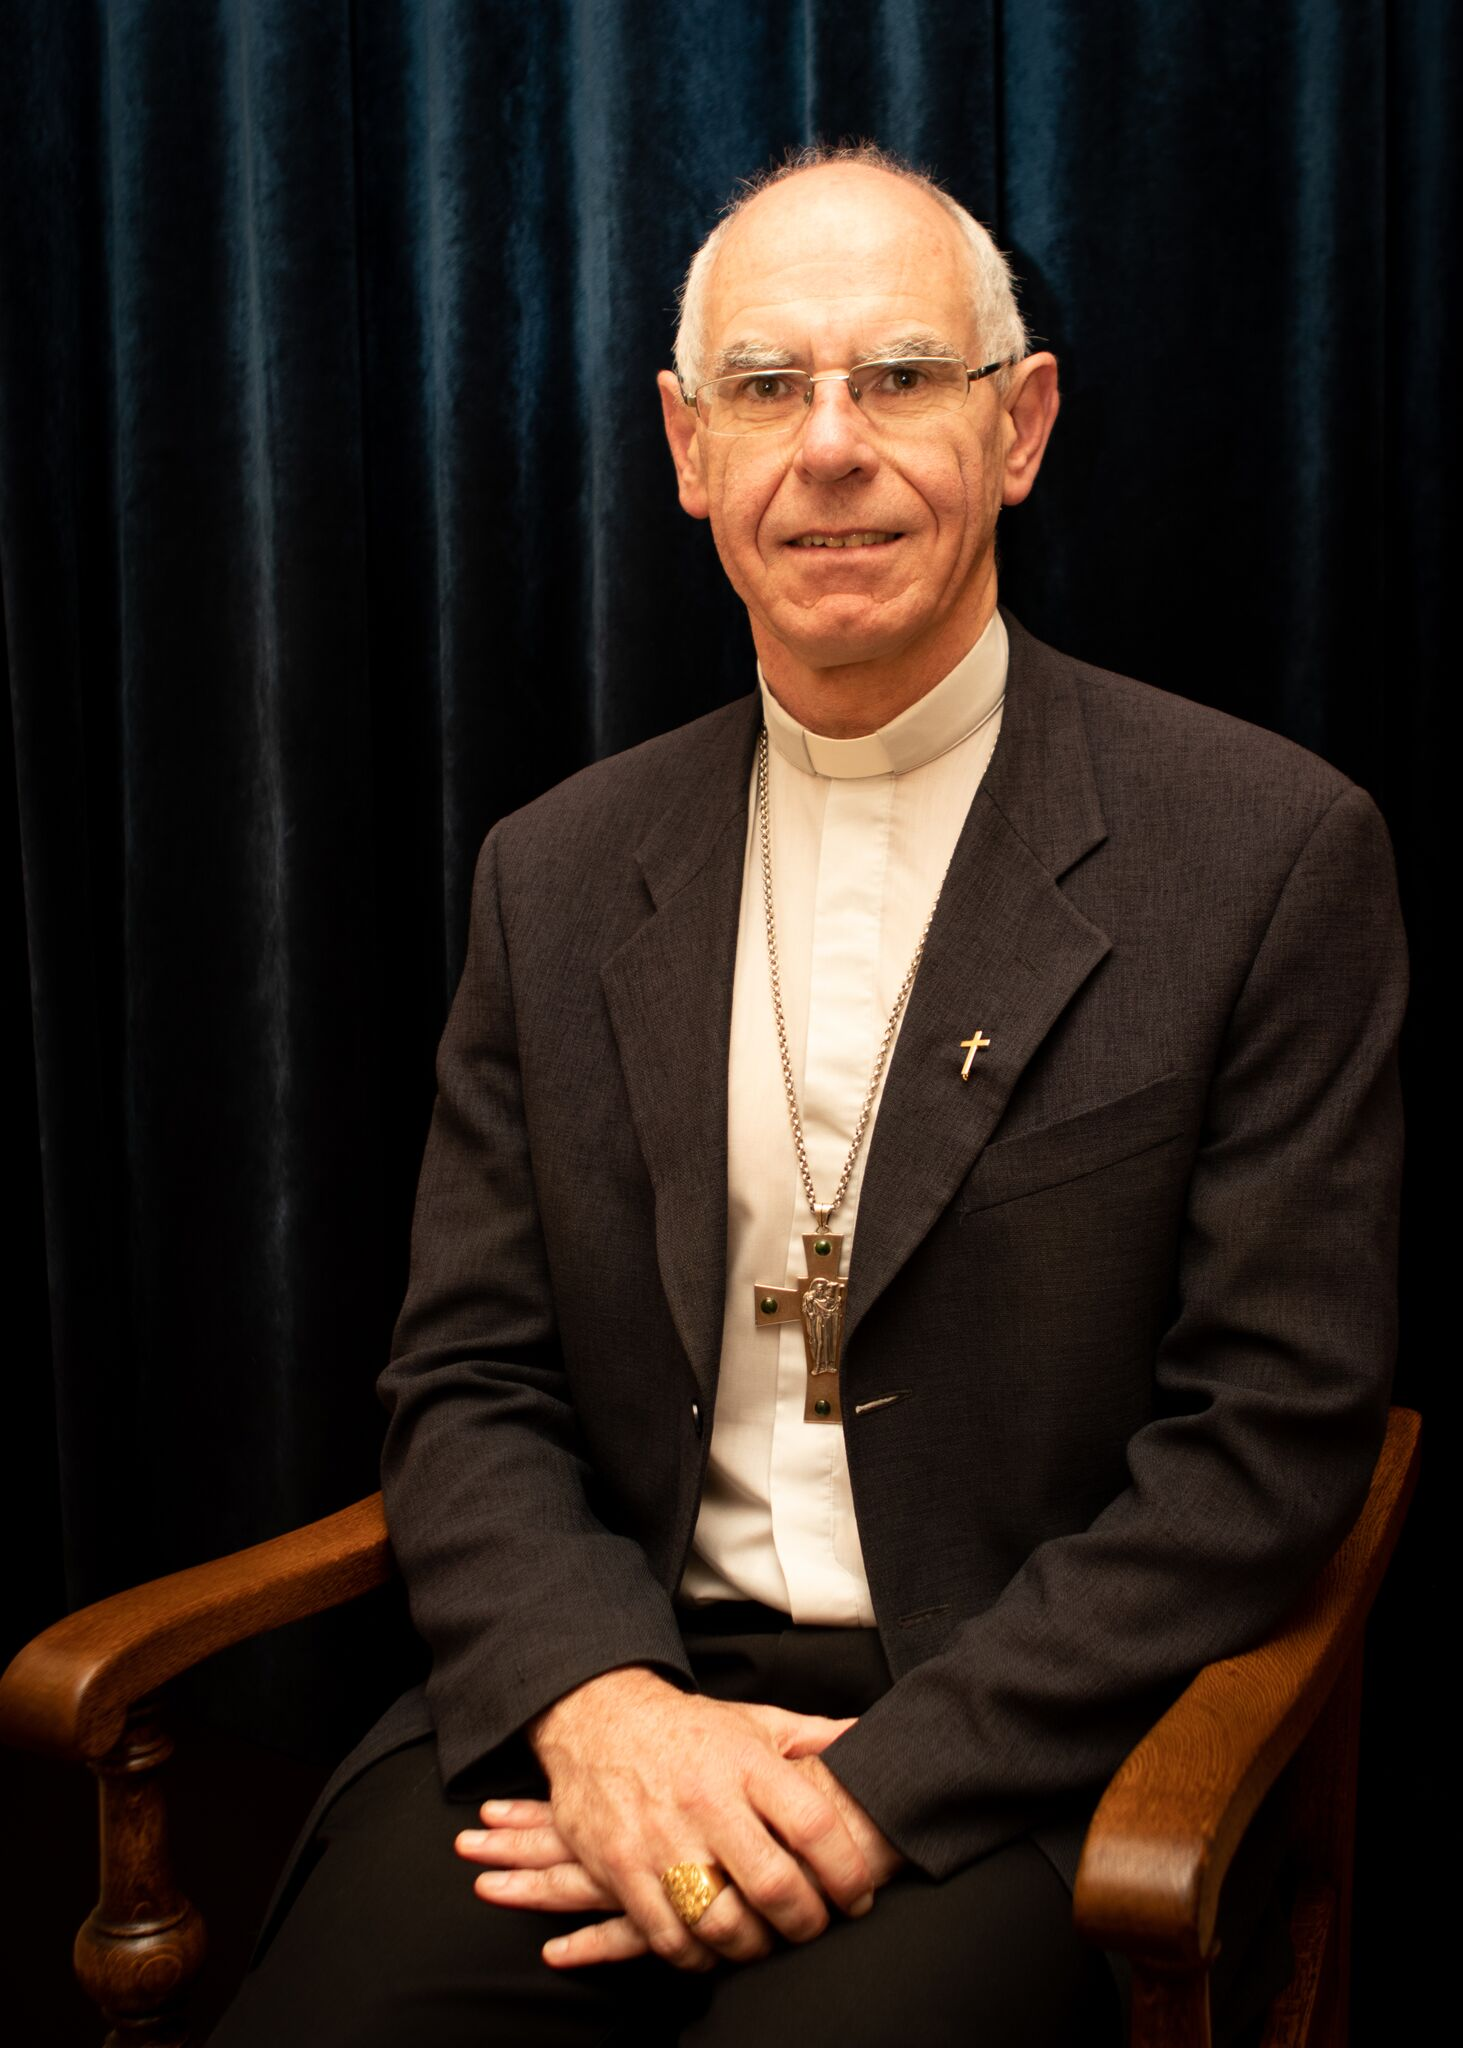 Bishop Michael Dooley